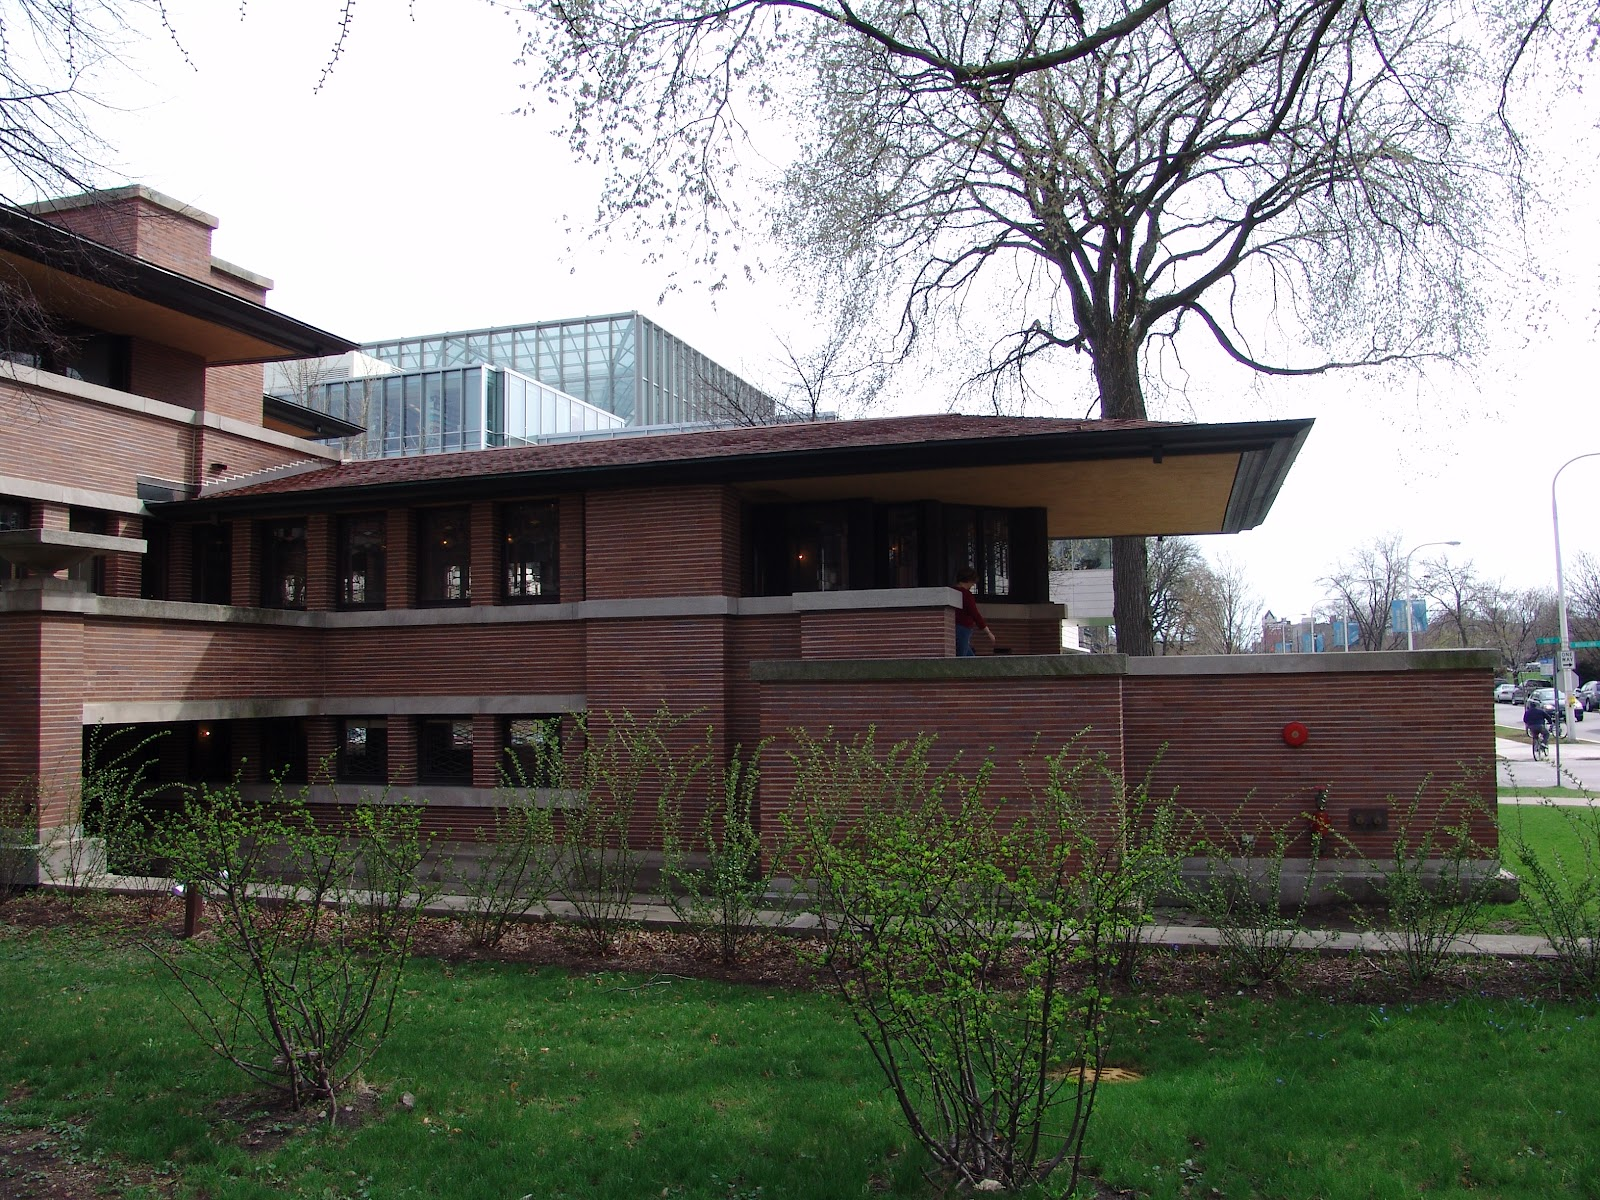 Sketchup vray artists sva rendering challenge the robie for Frank lloyd wright houses